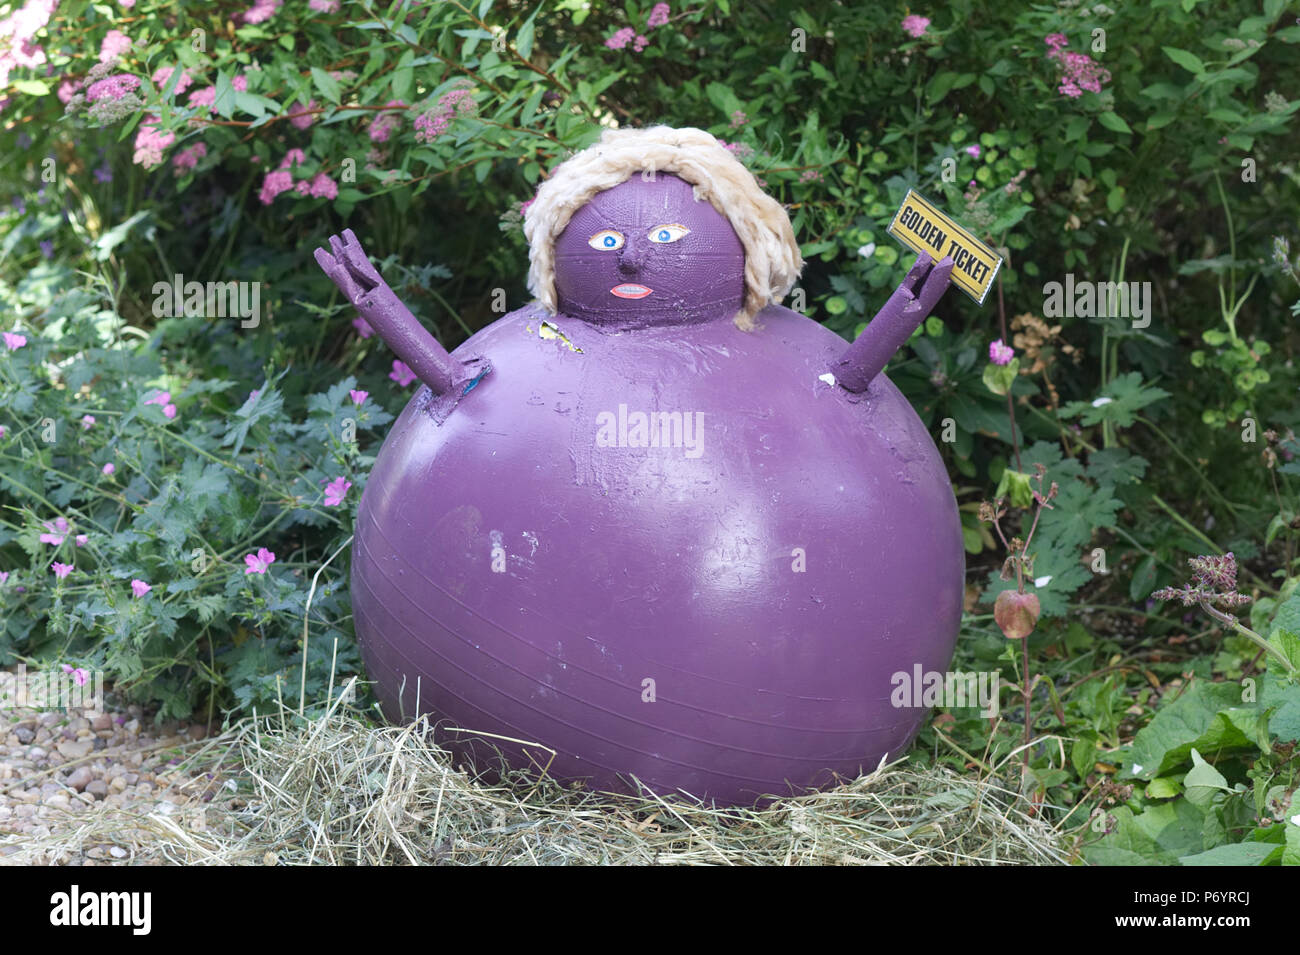 violet beauregarde as a giant blueberry charlie and the chocolate